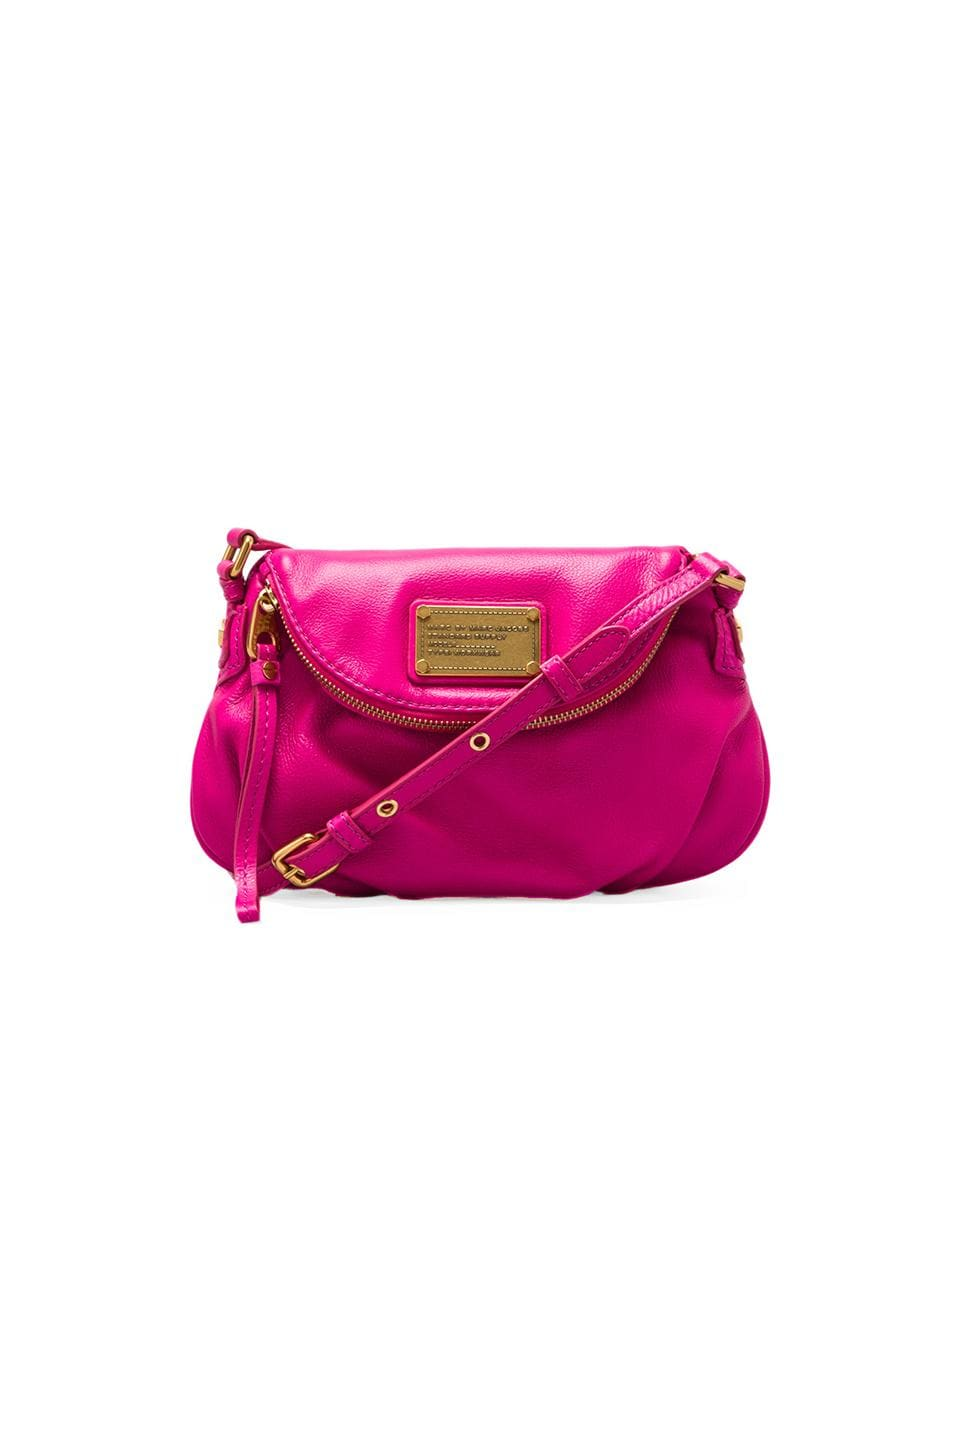 Marc by Marc Jacobs Classic Q Mini Natasha Bag in Pop Pink